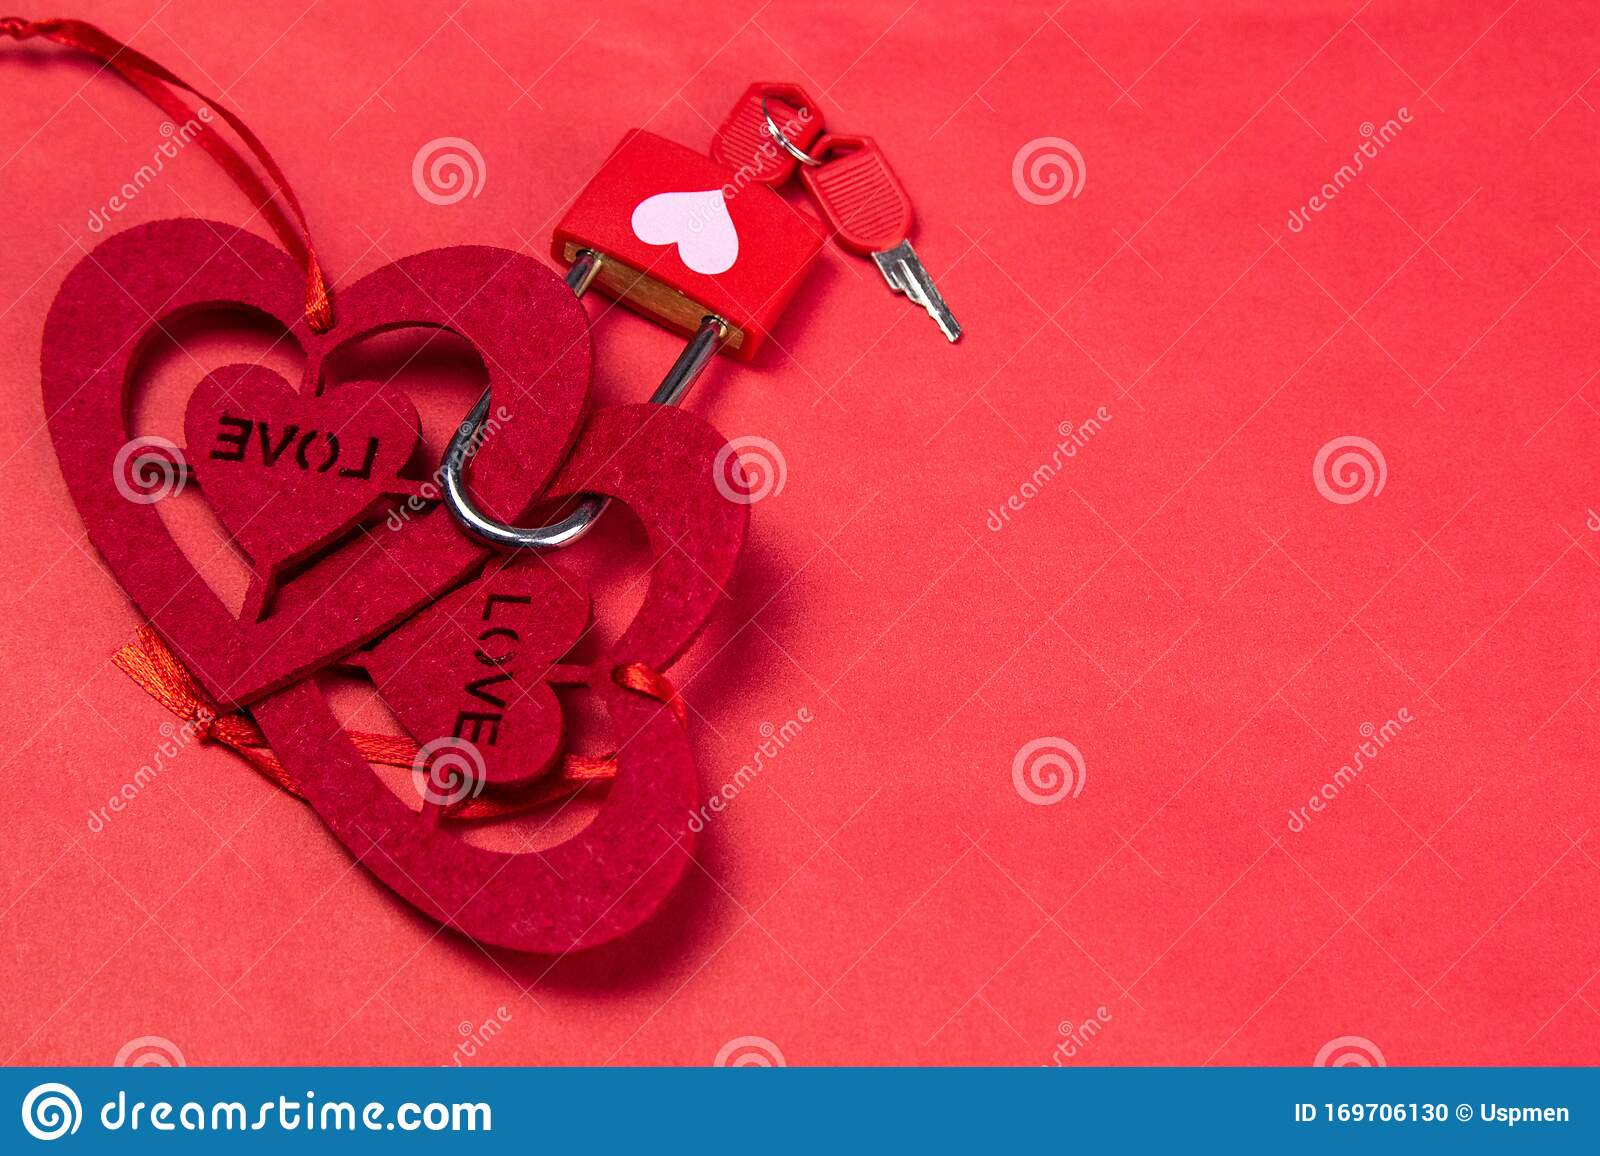 Two Hearts Made Of Felt Are Connected By A Block With A Key On A Marble Pink Background Stock Photo Image Of Republic Partner 169706130